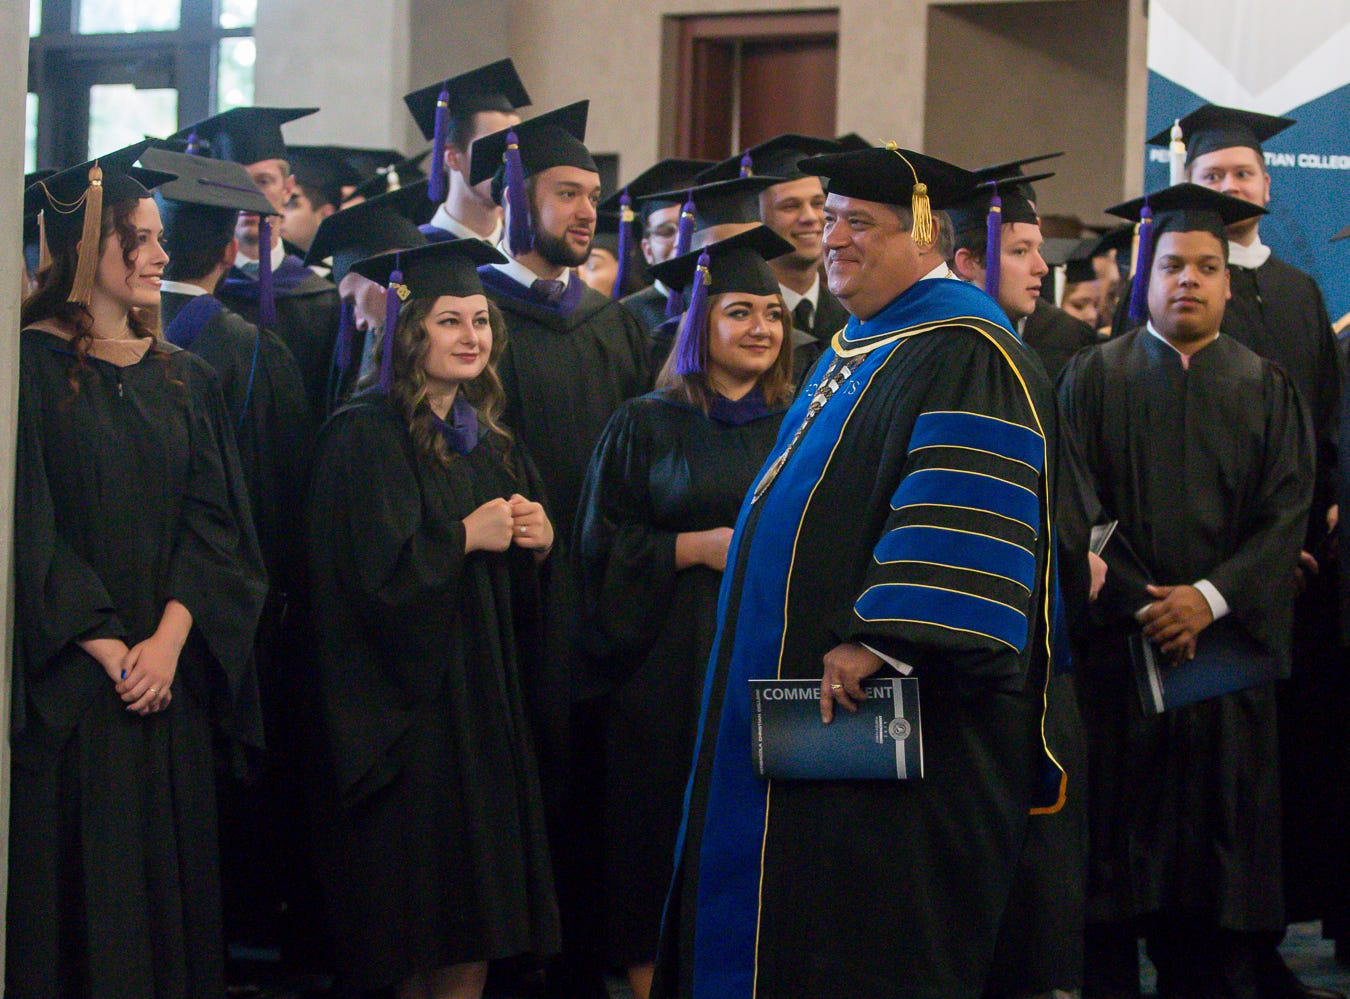 Over 1,000 students graduate from Pensacola Christian College on Friday, May 10, 2019, during the school's 44th commencement ceremony.